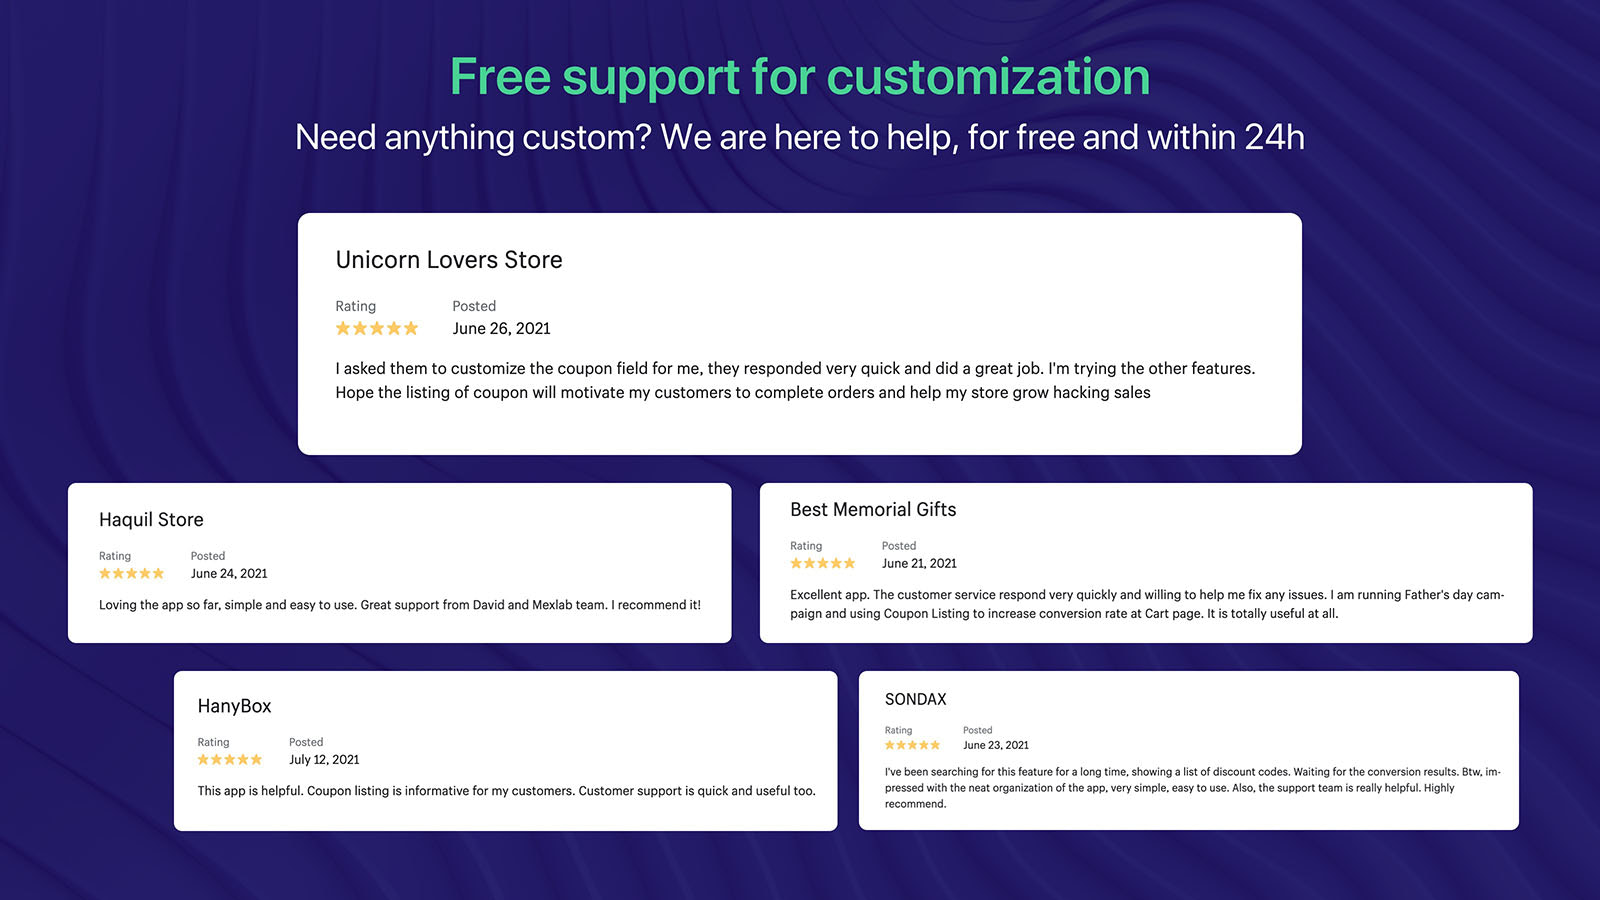 free for customization free support within 24 hours